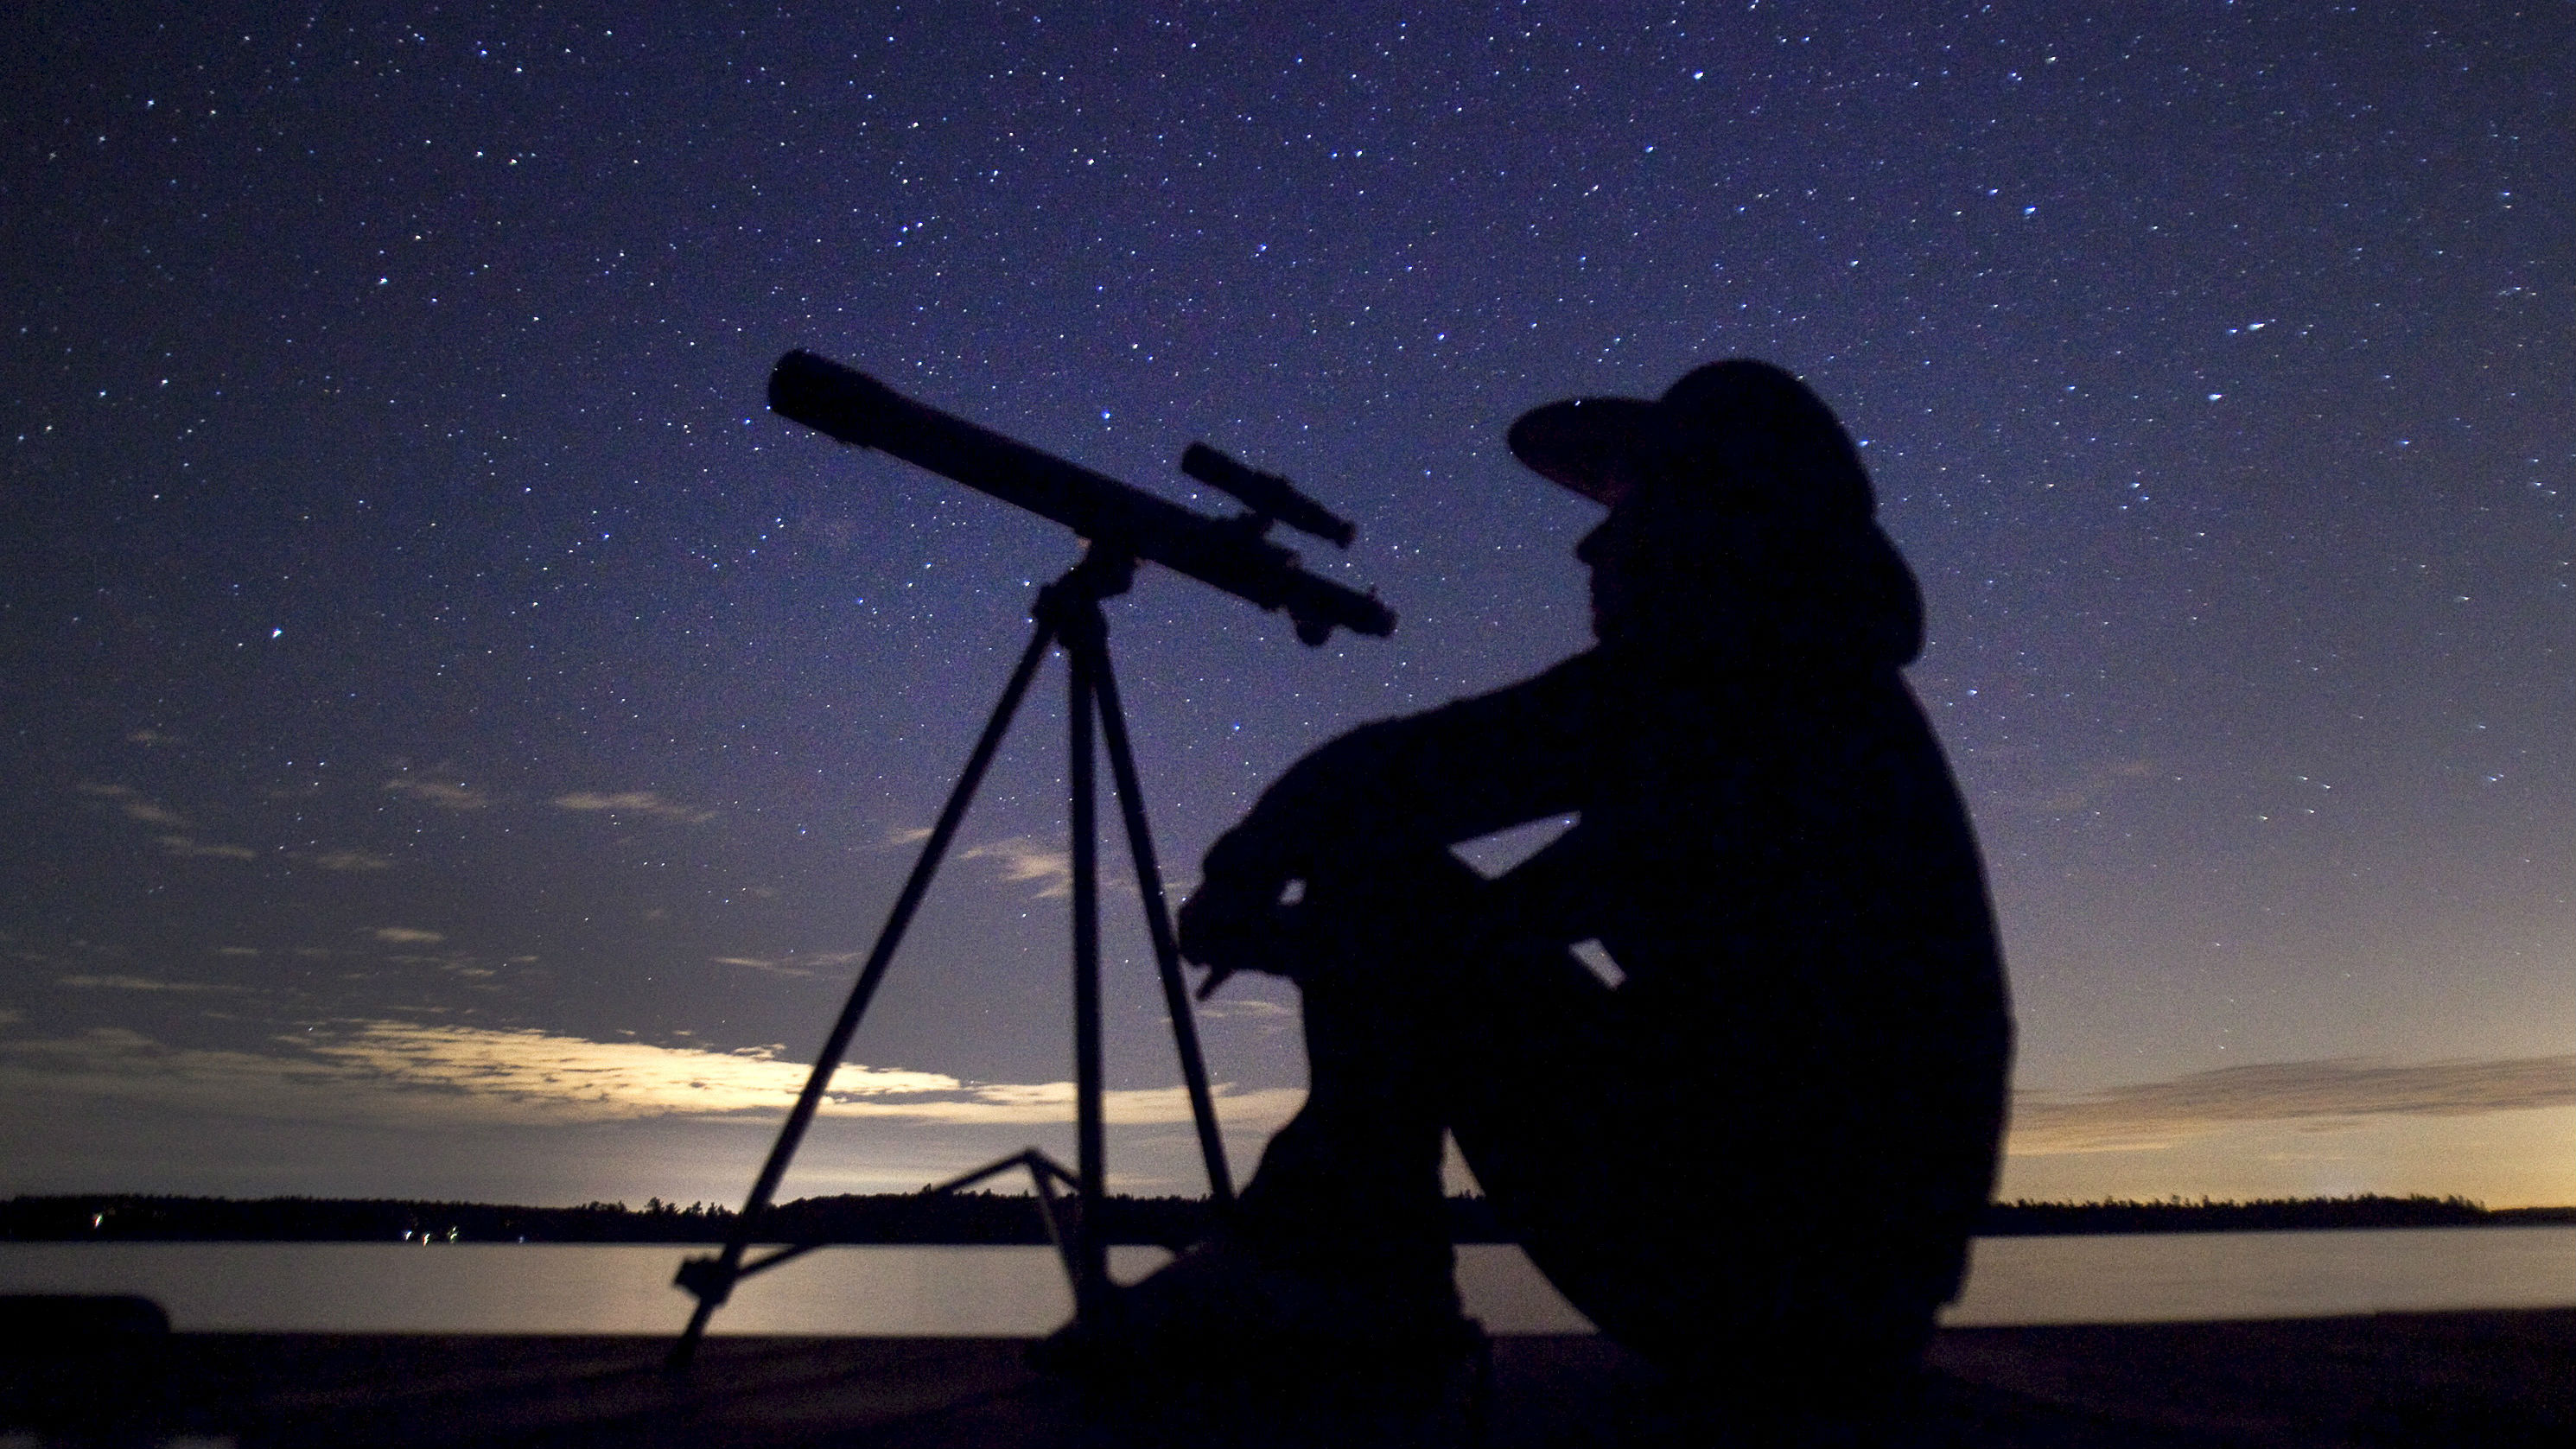 stargazer waits for the Perseid meteor shower to begin near Bobcaygeon, Ontario, August 12, 2015.